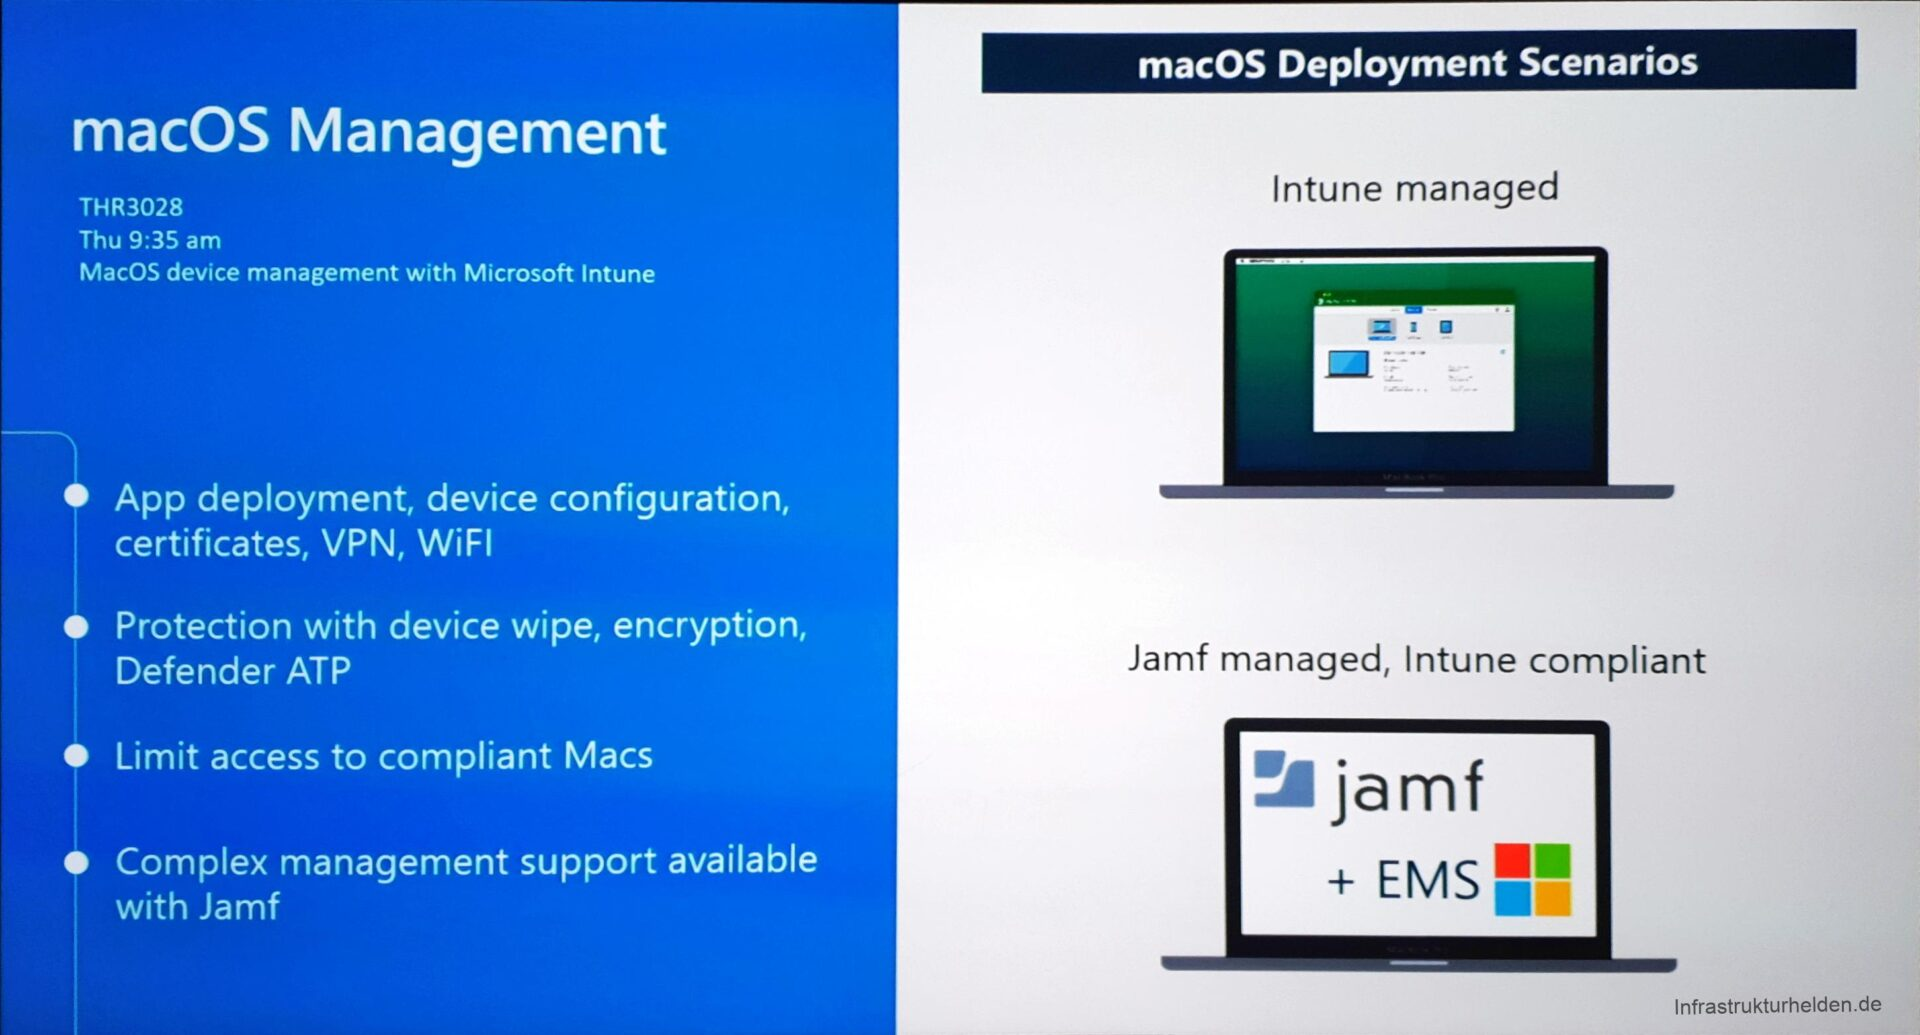 Computergenerierter Alternativtext: macOS Management  THR3028  Thu 9:35 am  MacOS device management With Microsoft Intune  App deployment, device configuration,  certificates, VPN, WiFl  e Protection With device wipe, encryption,  Defender AT p  Limit access to compliant Macs  e Complex management support available  With Jamf  macOS Deployment Scenarios  Intune managed  Jamf managed, Intune compliant  Zajamf  + EMS